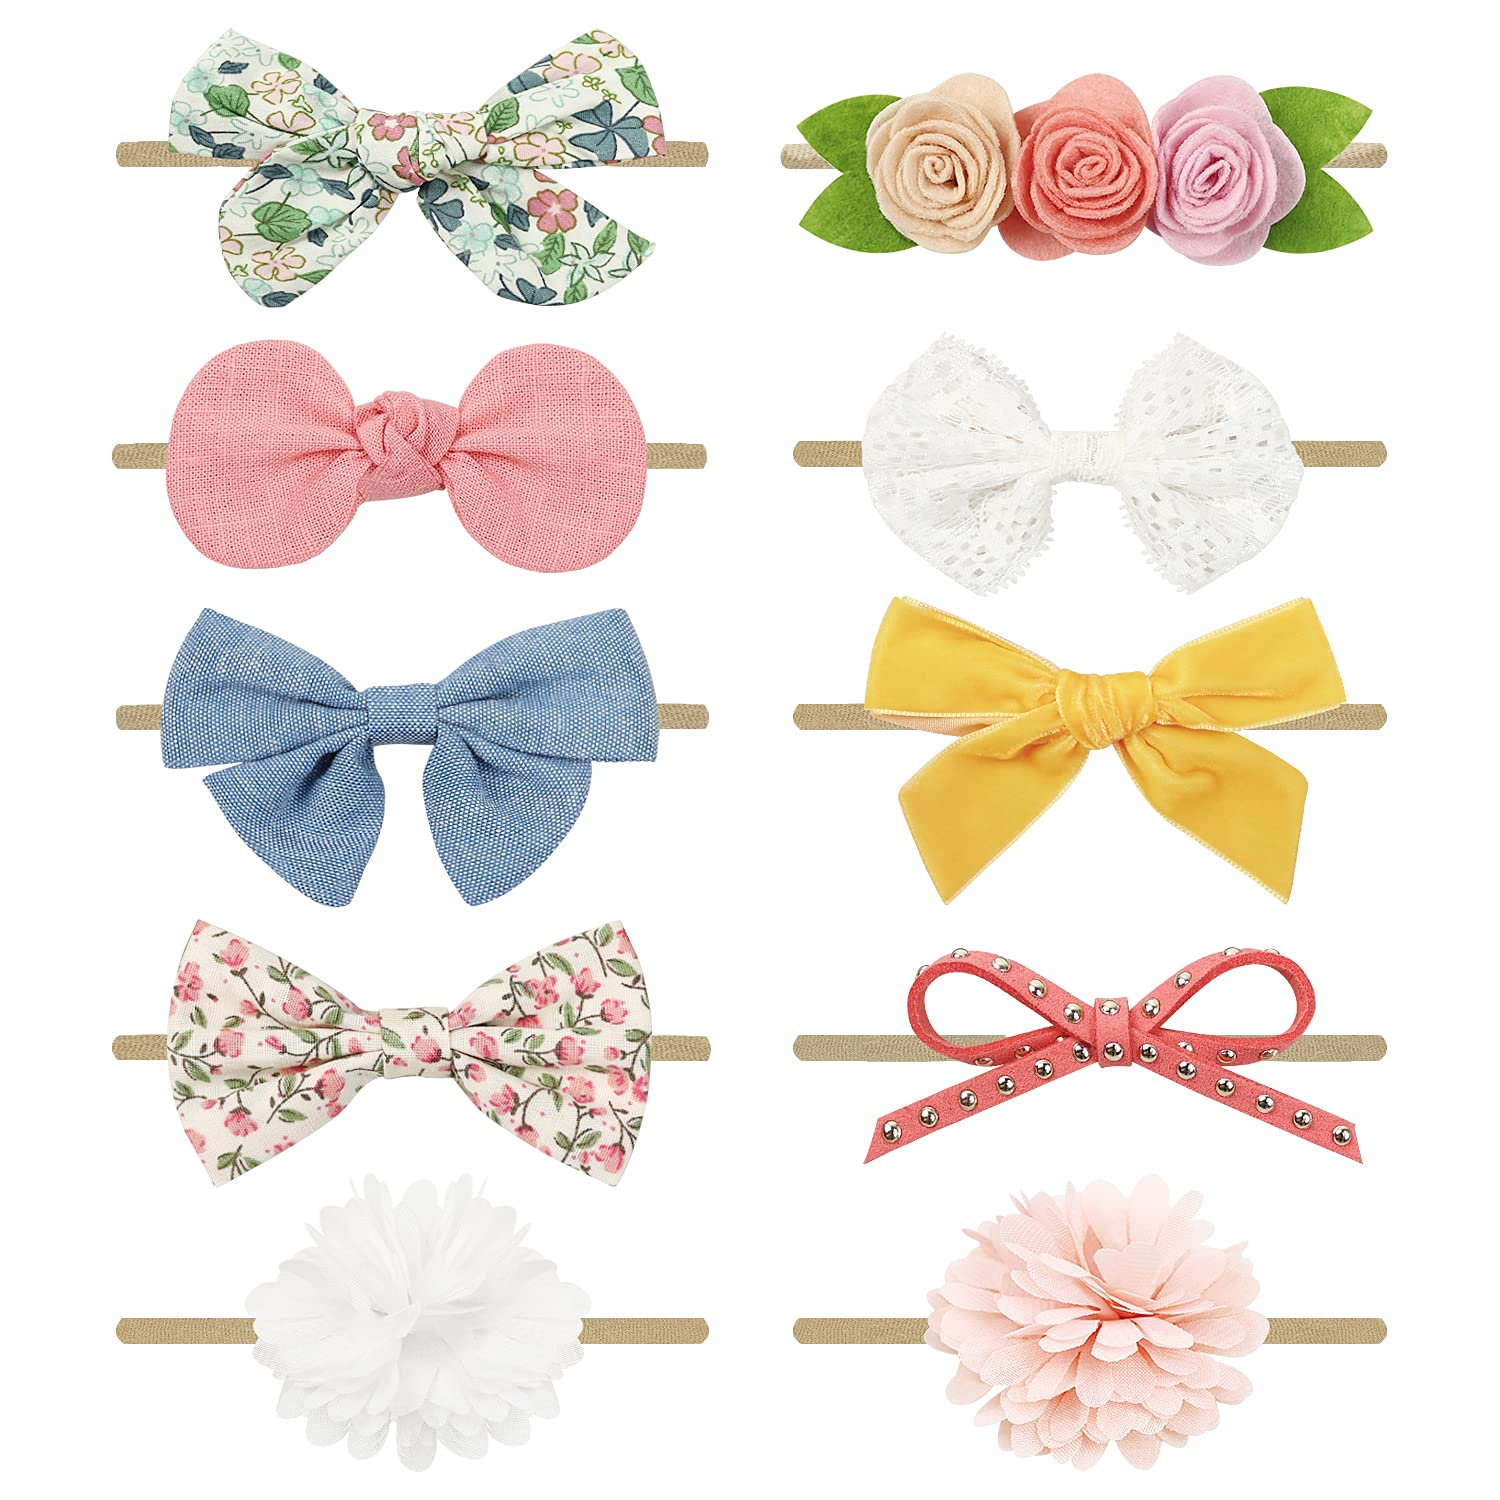 Baby Girl Headbands with Bows Acce Outlet SALE Hair Nylon Hairbands Free Shipping New Handmade